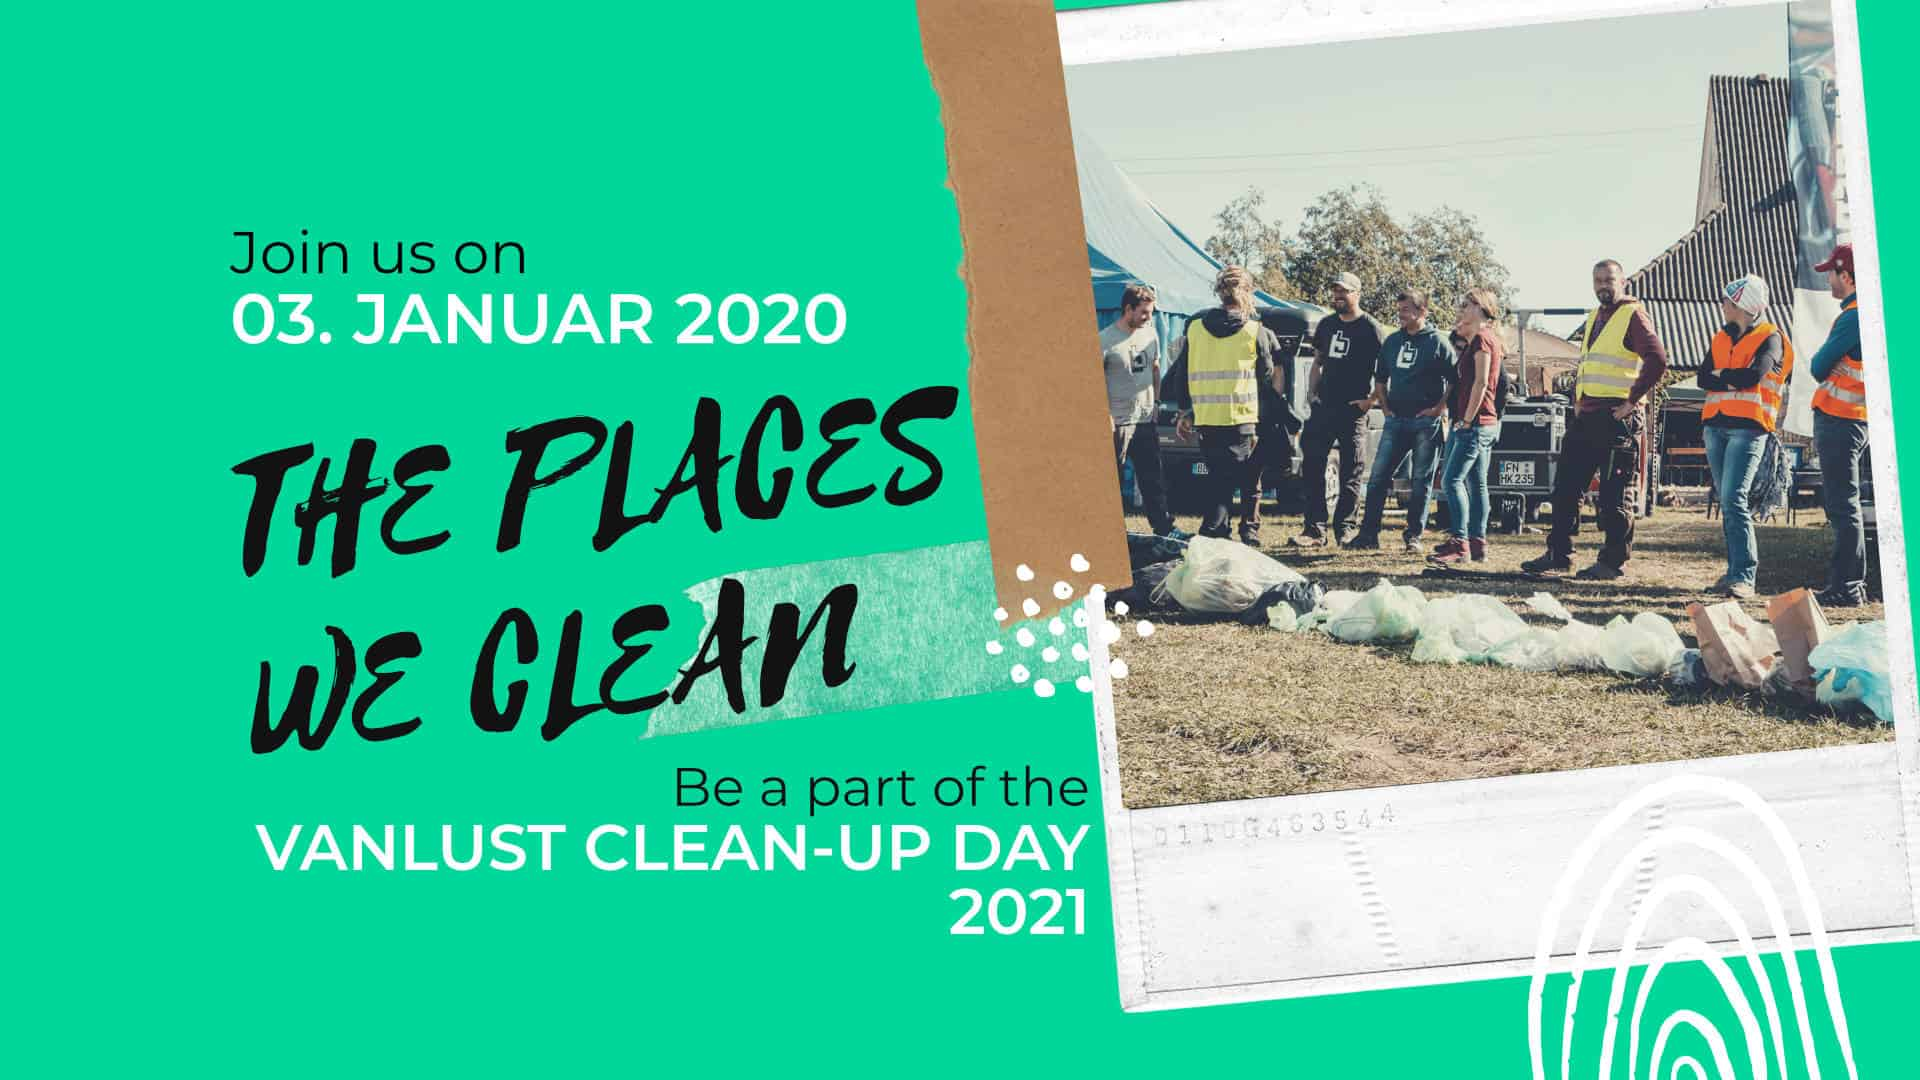 Vanlust NEUJAHRS-Clean-Up Day 03.01.2021